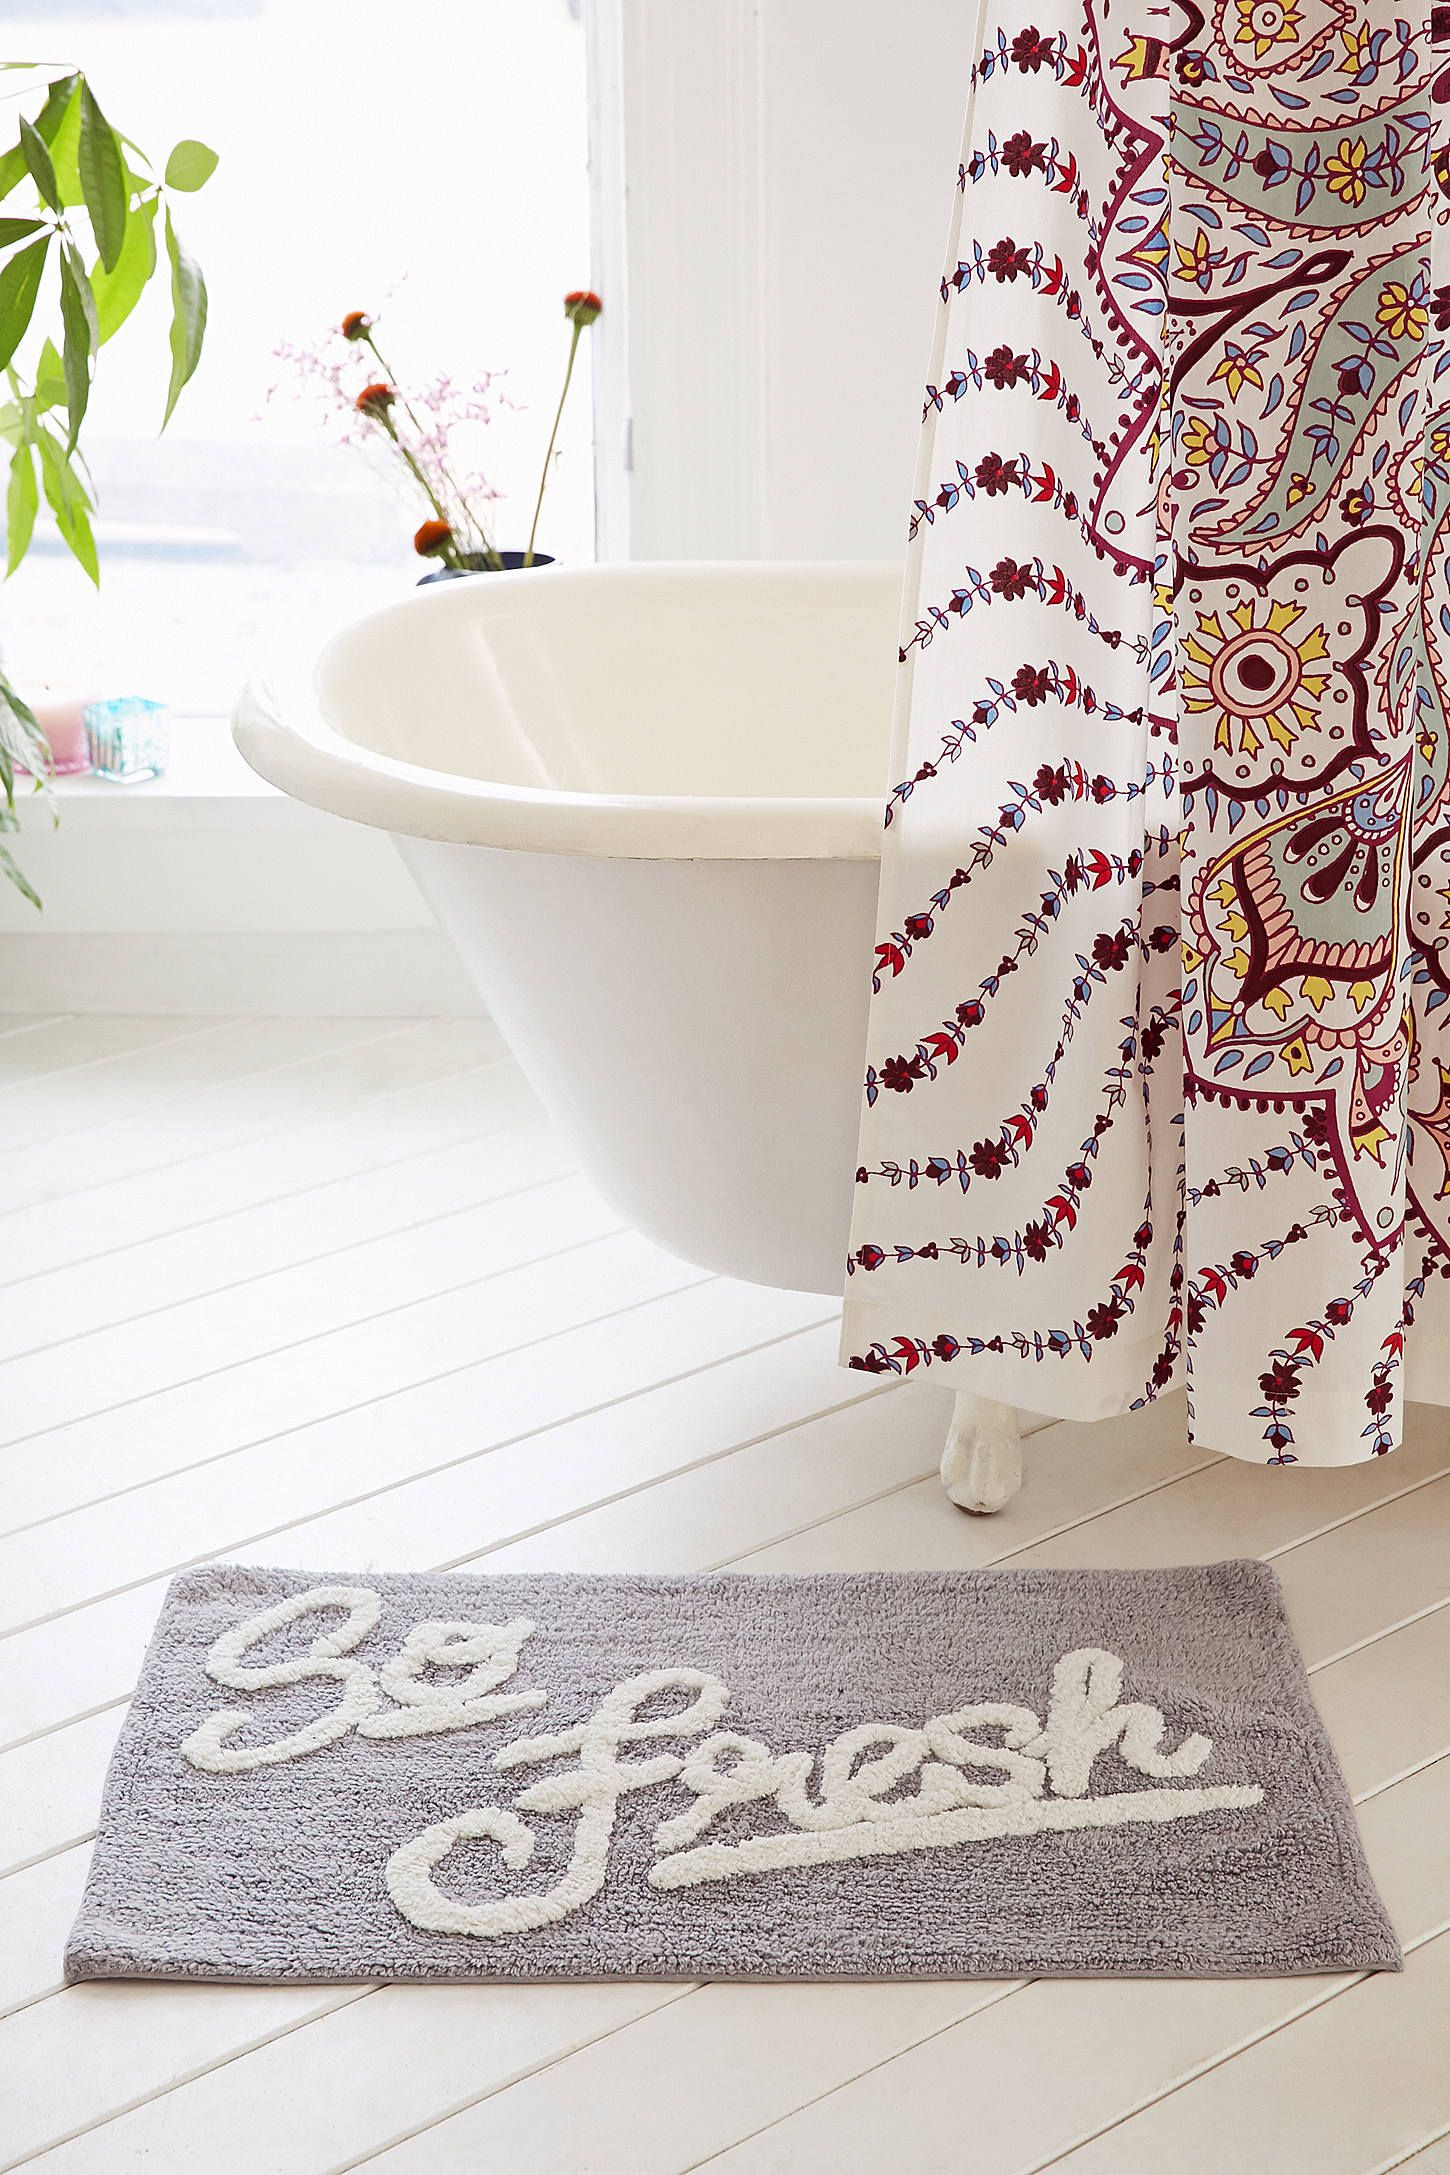 rooms bathroom urban pinterest outfitters pin laundry side sunny bath up mat